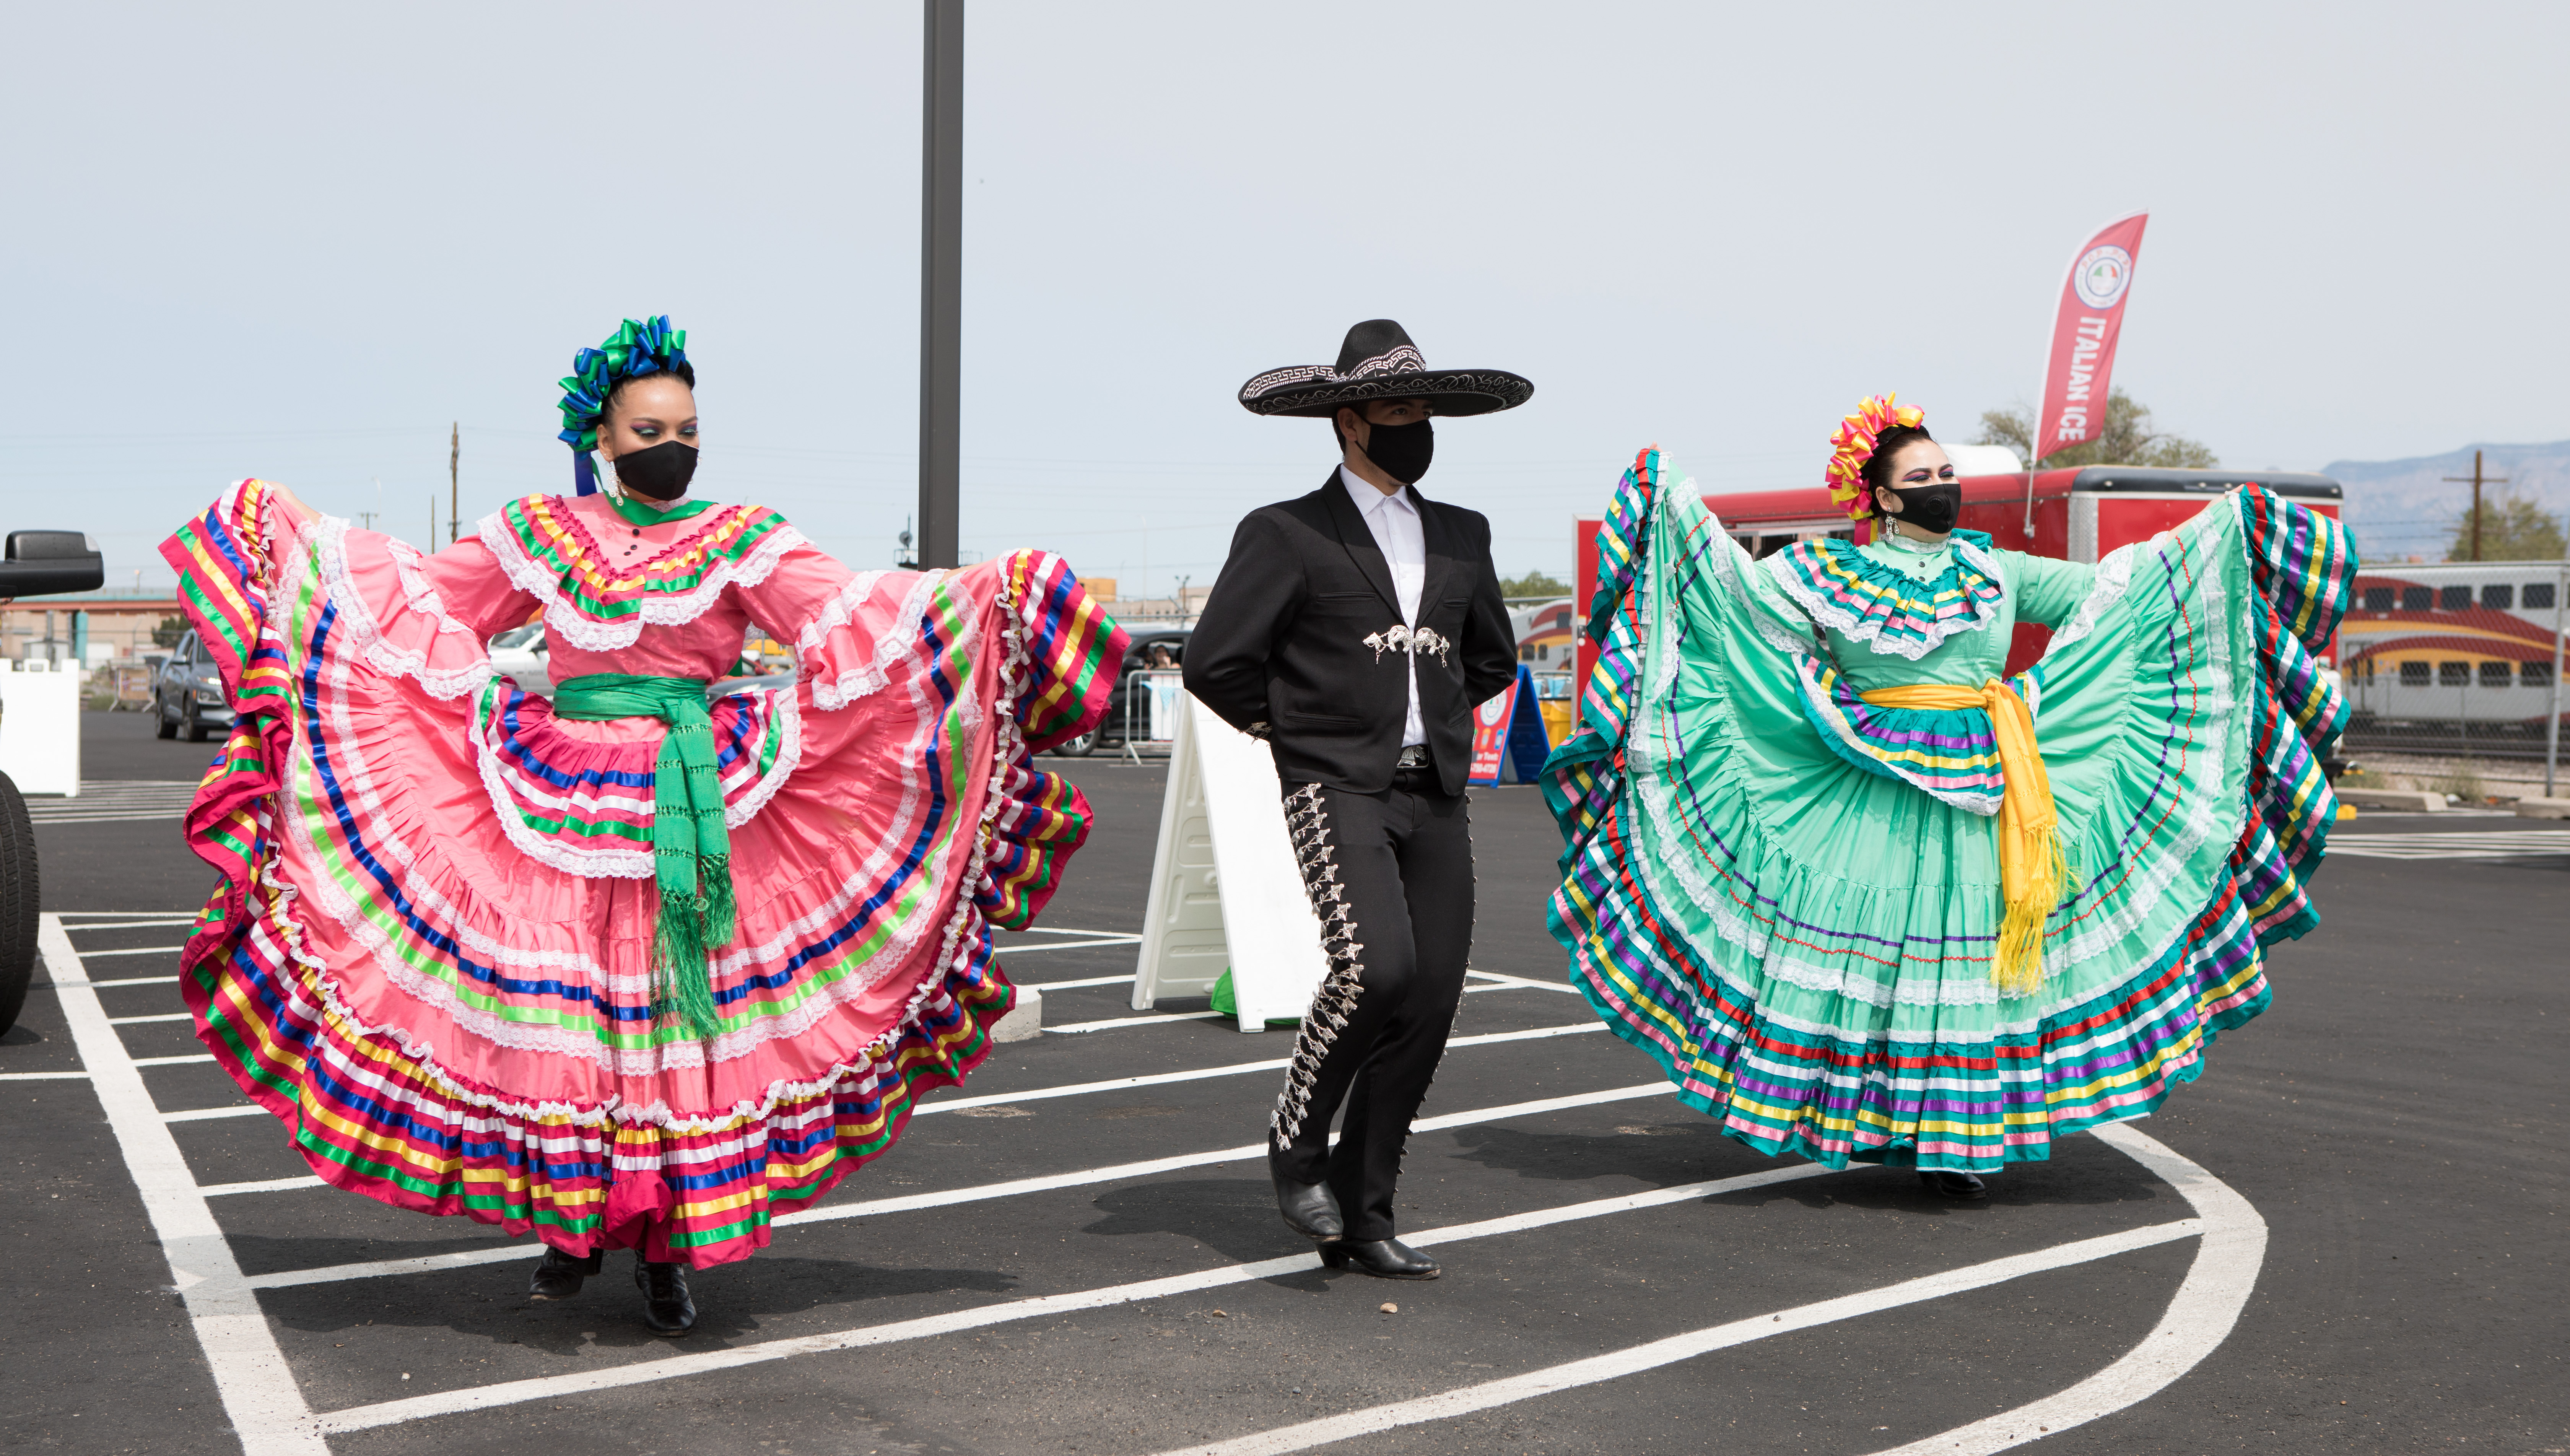 Mariachi dancers performing in a parking lot.